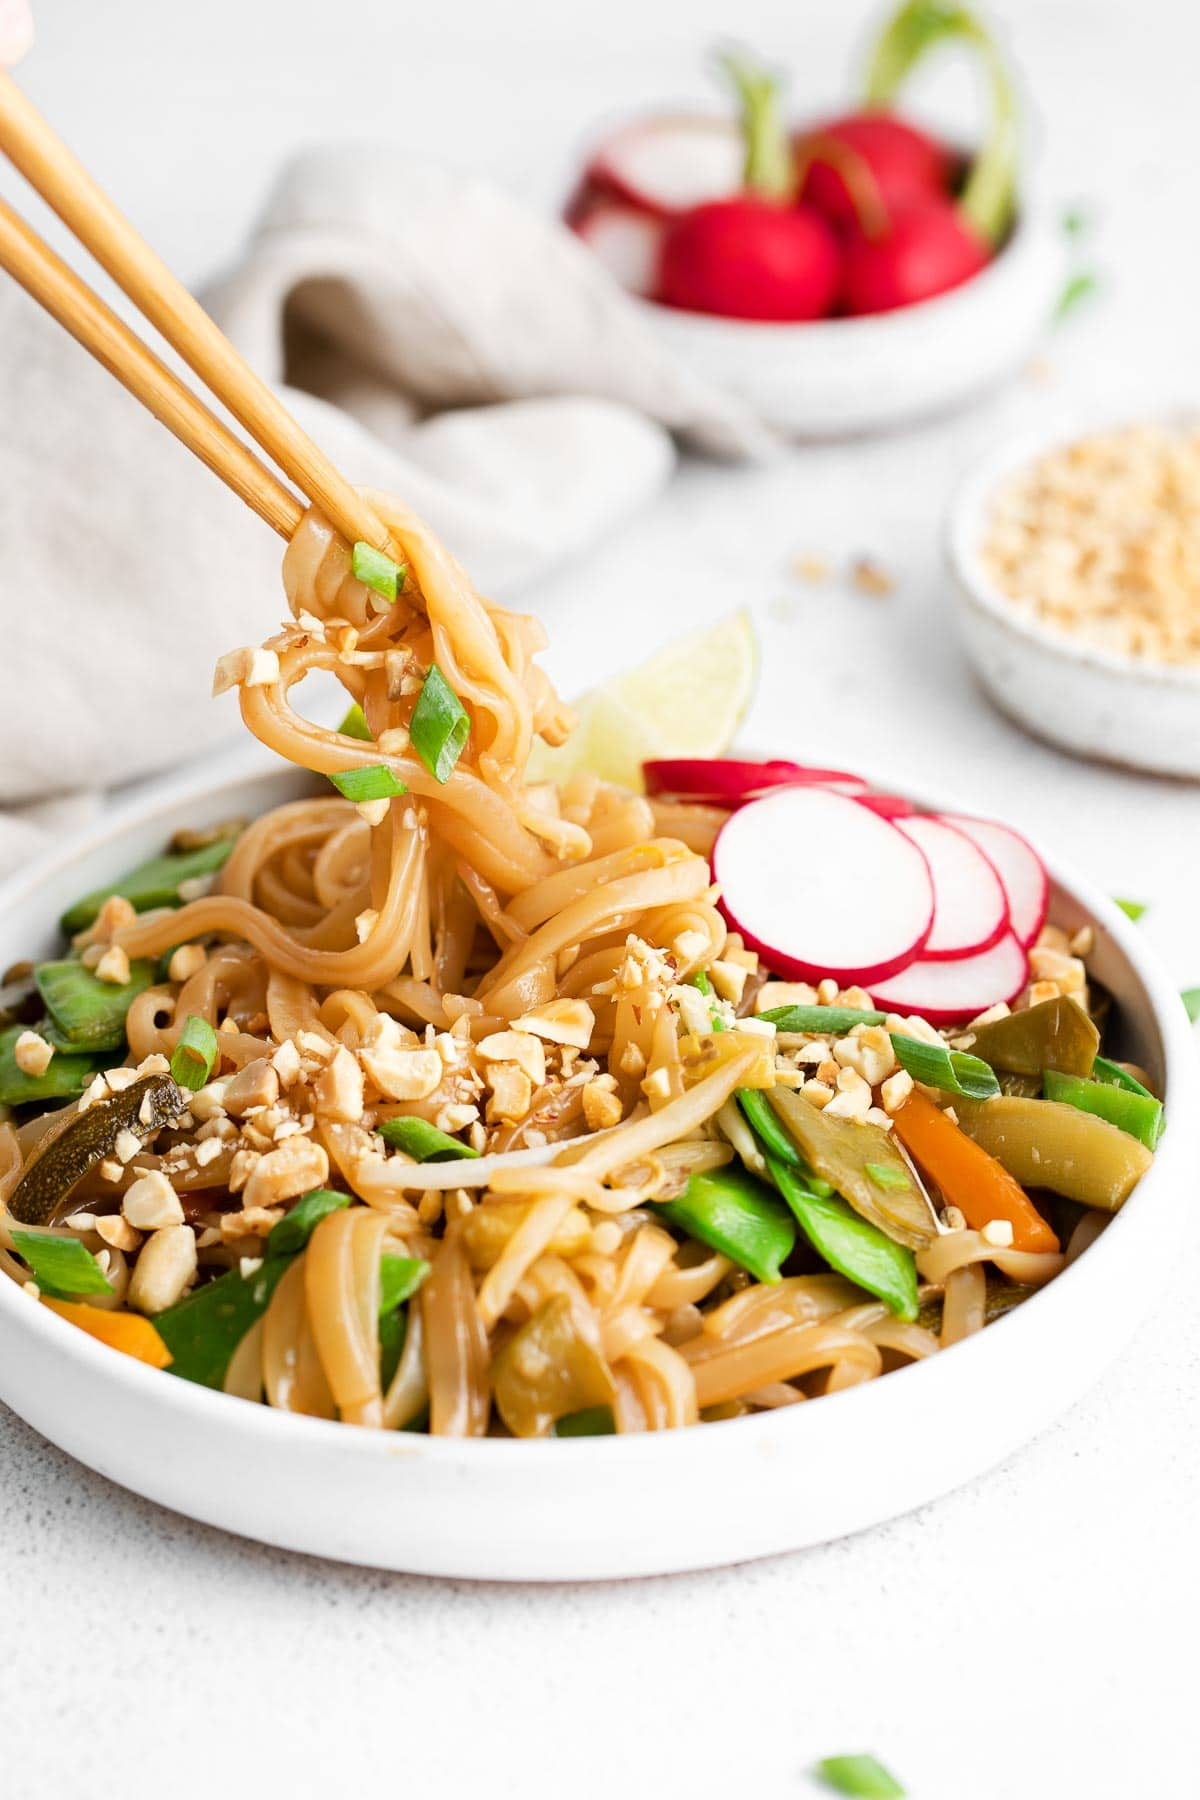 rice noodles with fresh radishes and crushed peanuts being twirled by chopsticks